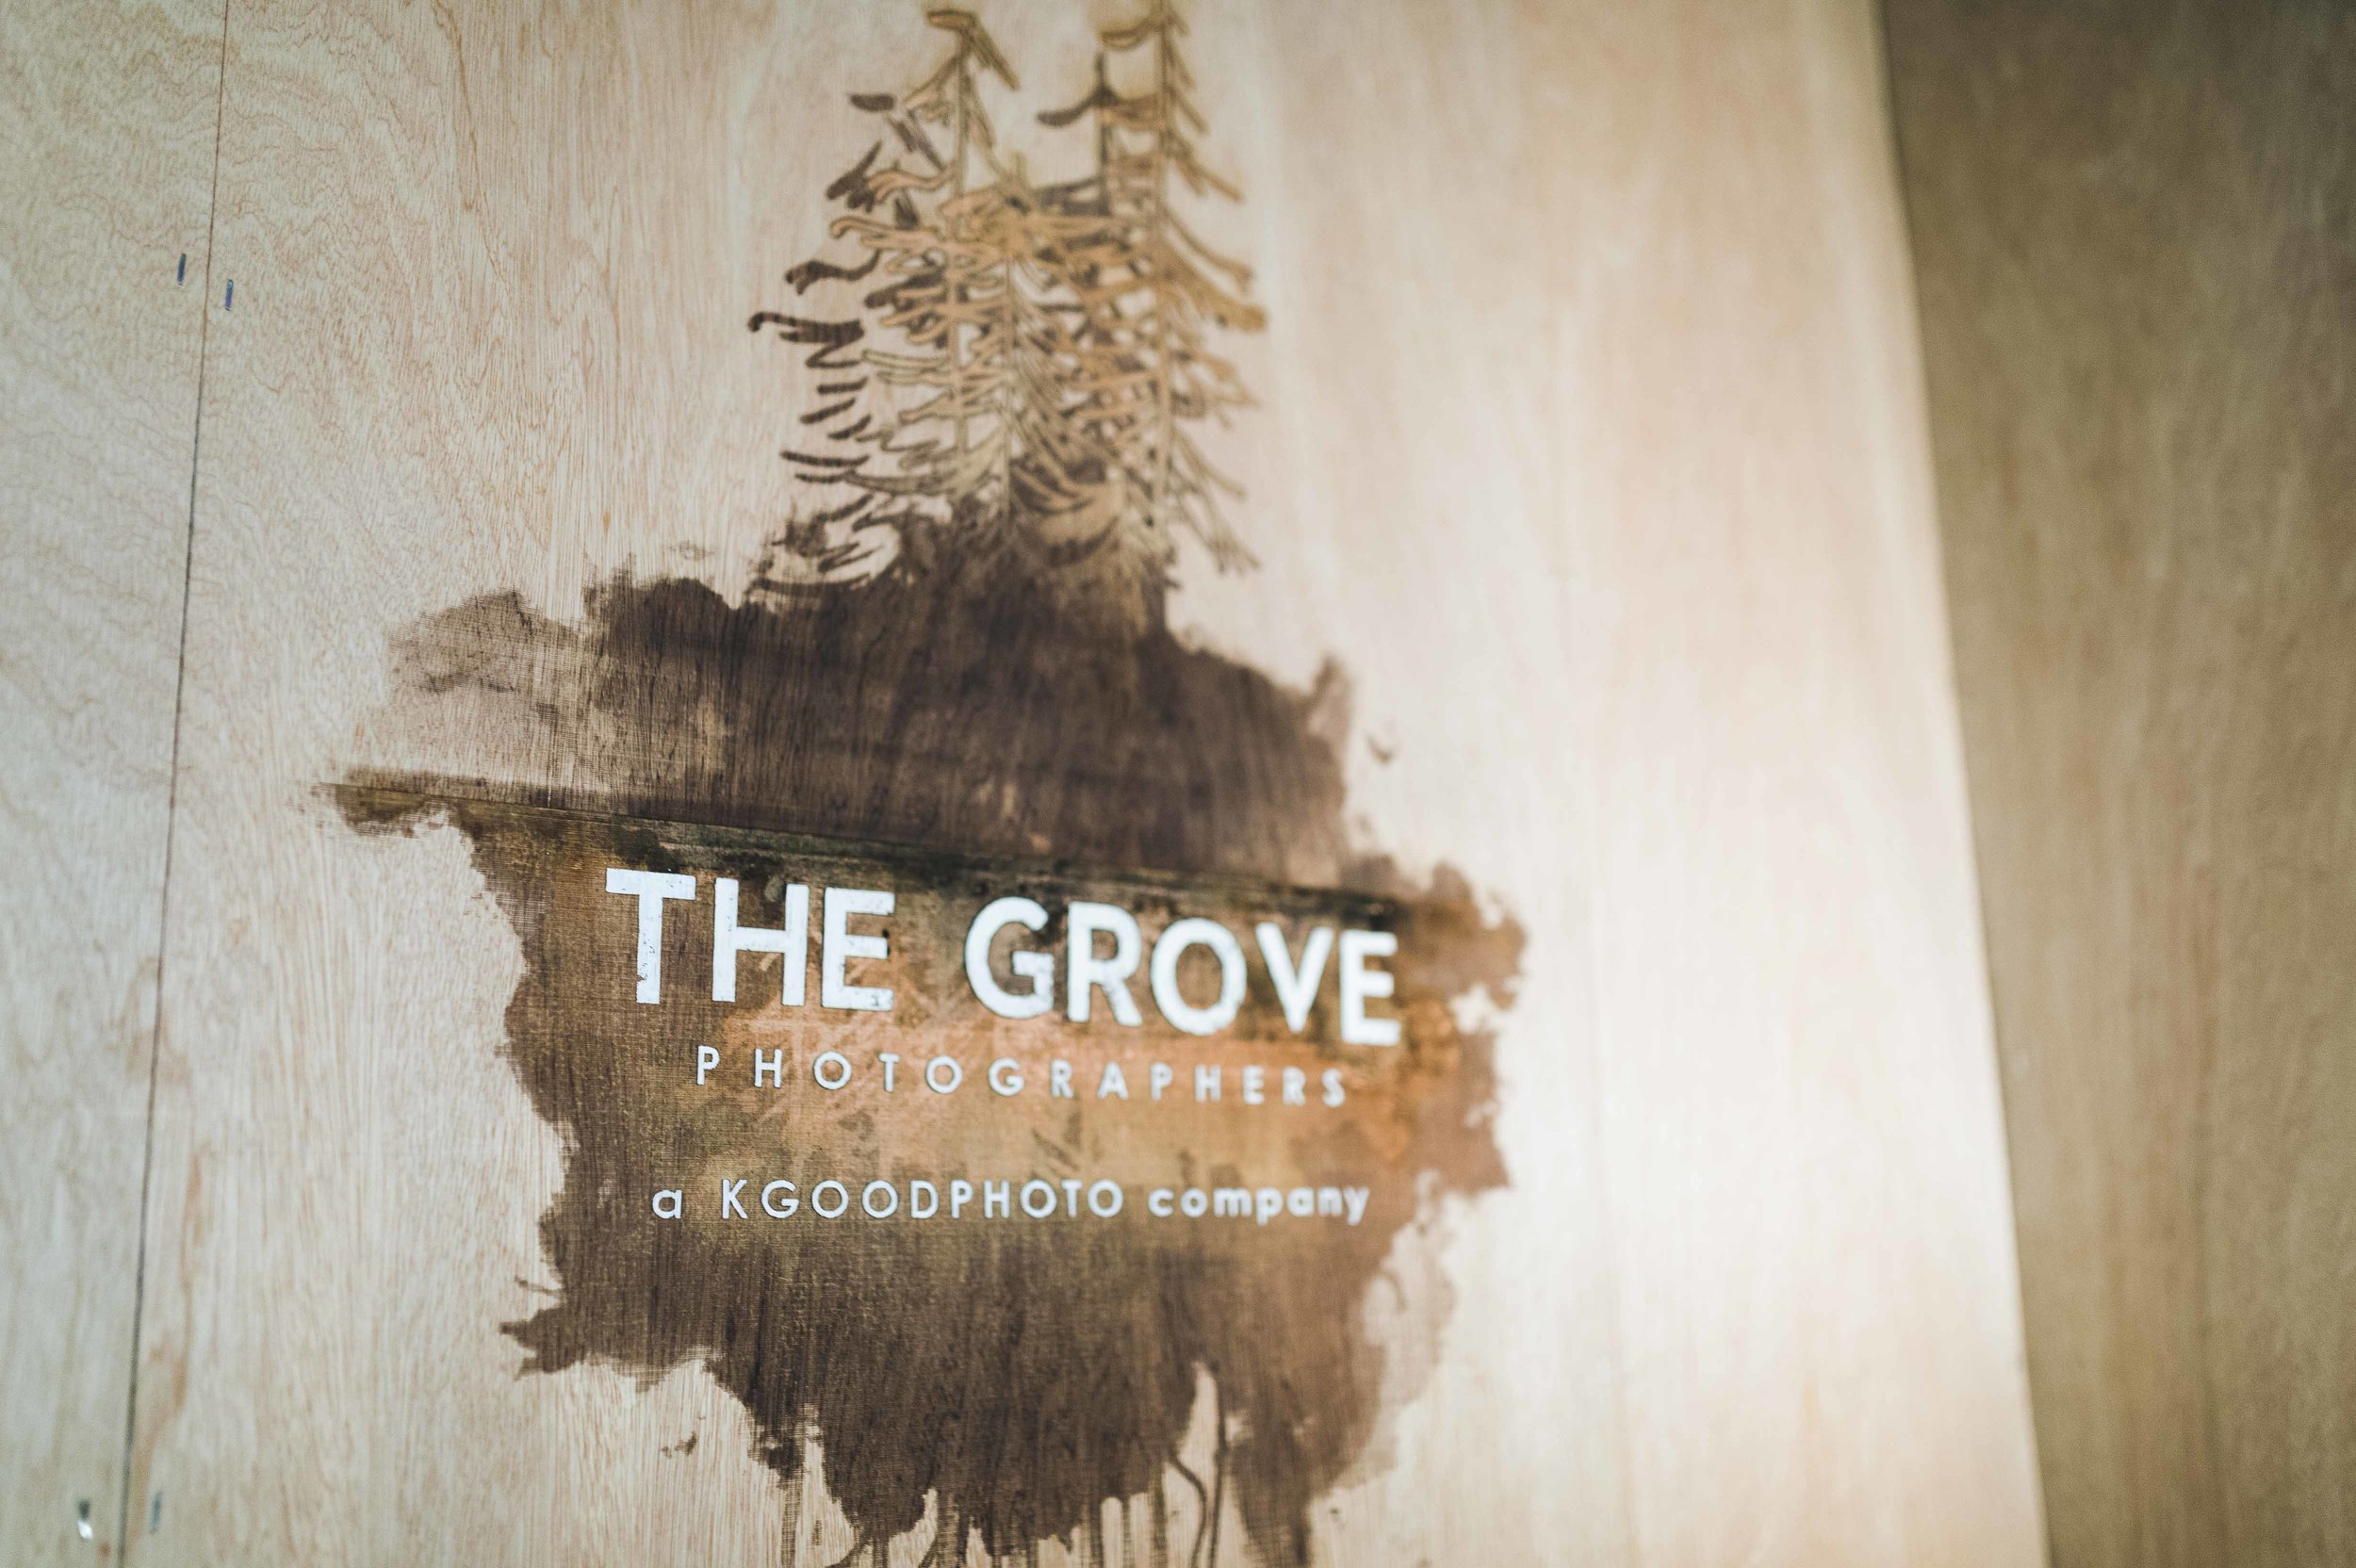 The corner signage for our client's sub-brand, The Grove, was laser cut on to mahogany doorskin and framed using dimensional lumber.